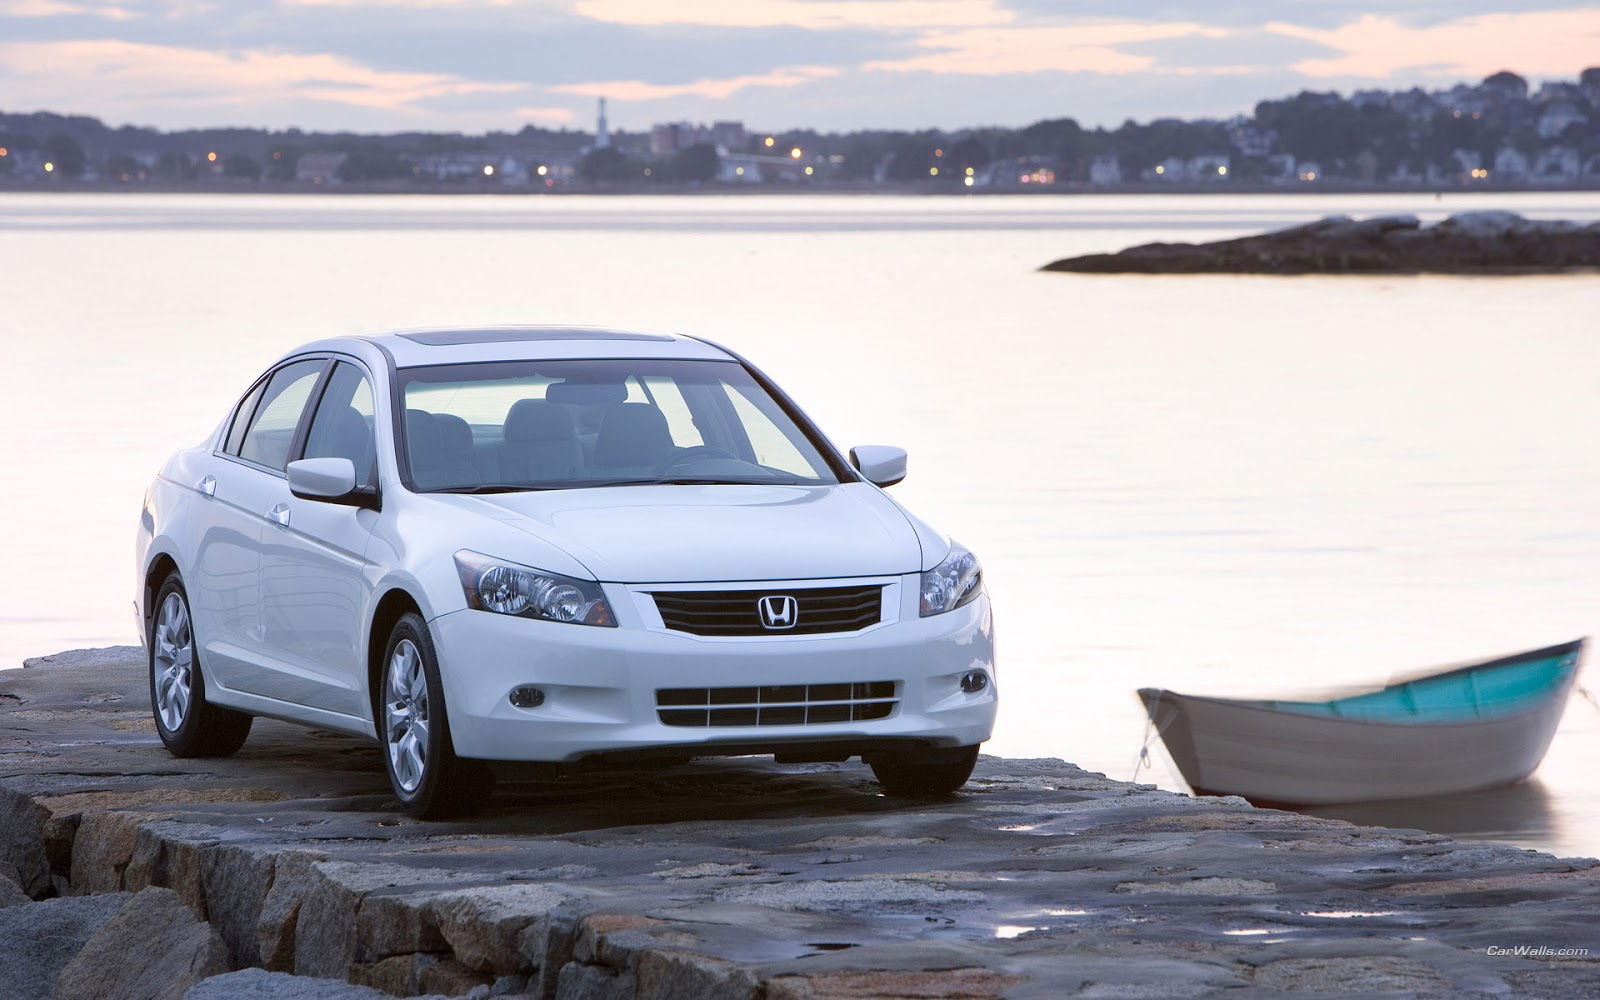 honda accord coupe 2013 reviews price and specs cars wallpapers hd. Black Bedroom Furniture Sets. Home Design Ideas